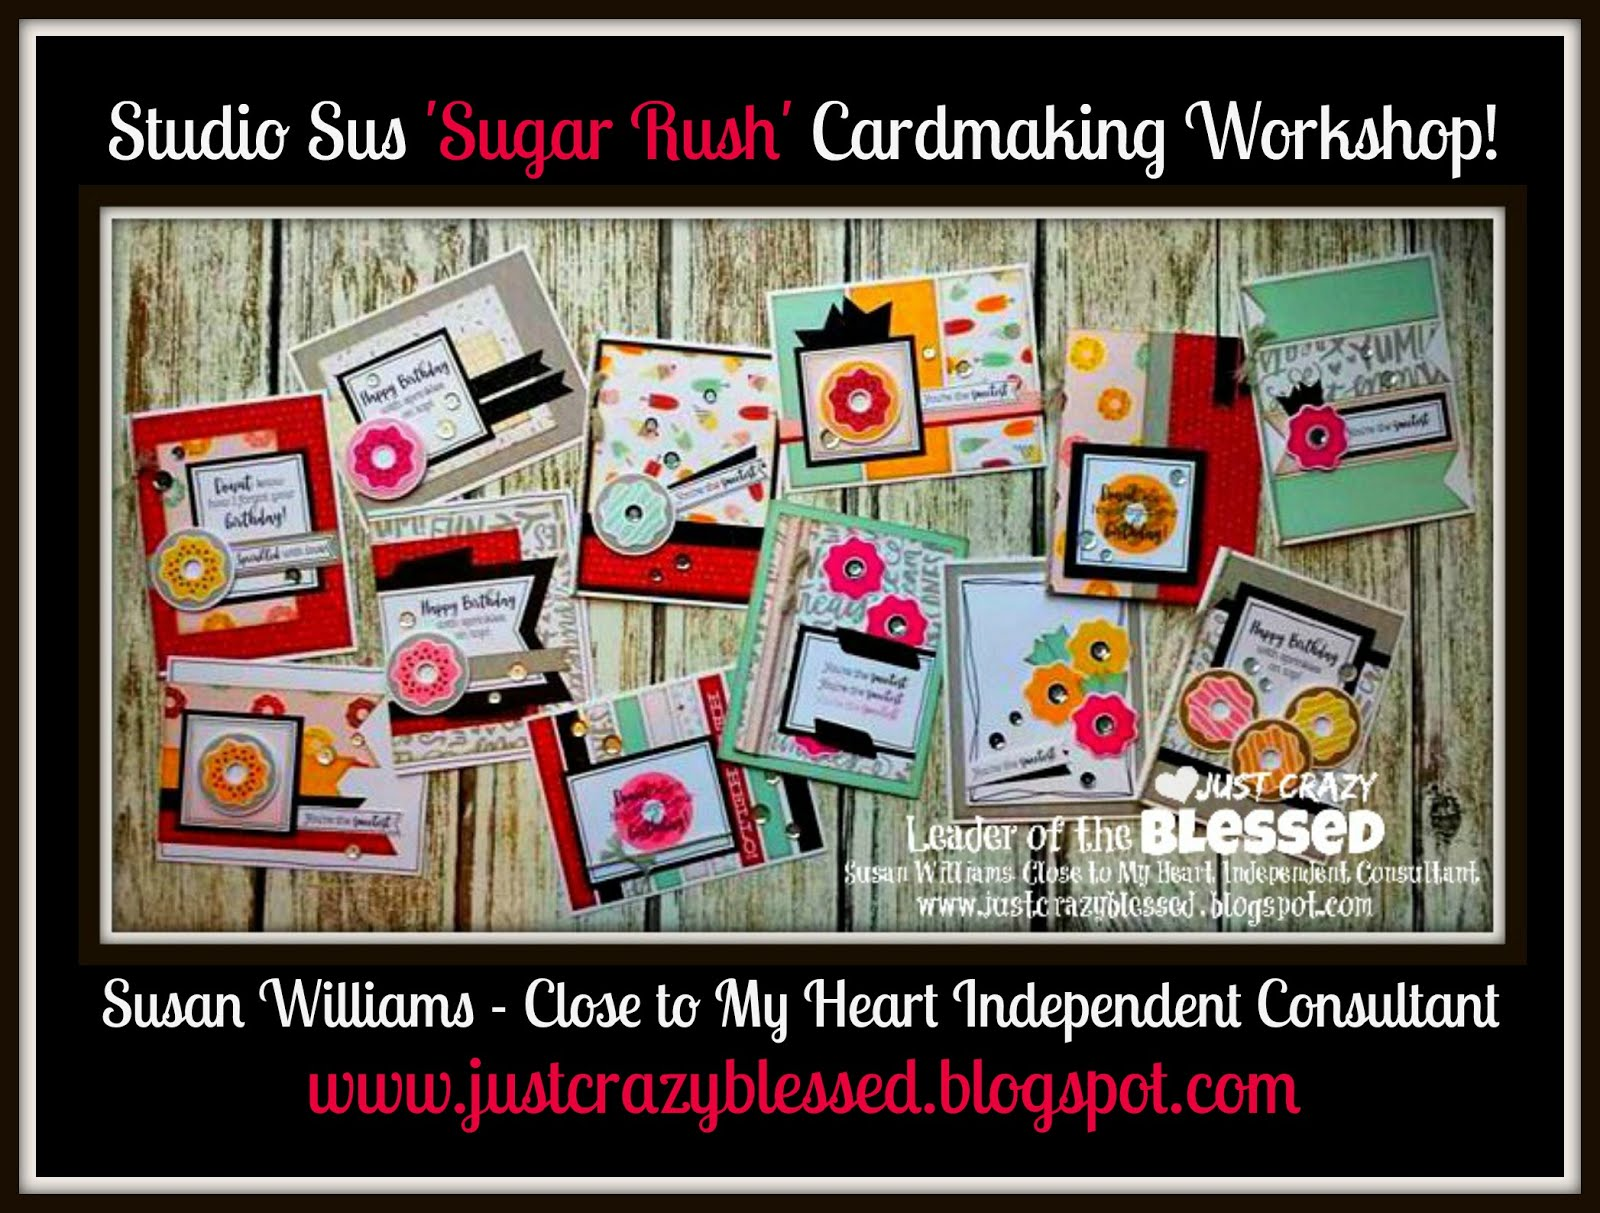 'Sugar Rush' Cardmaking Workshop!